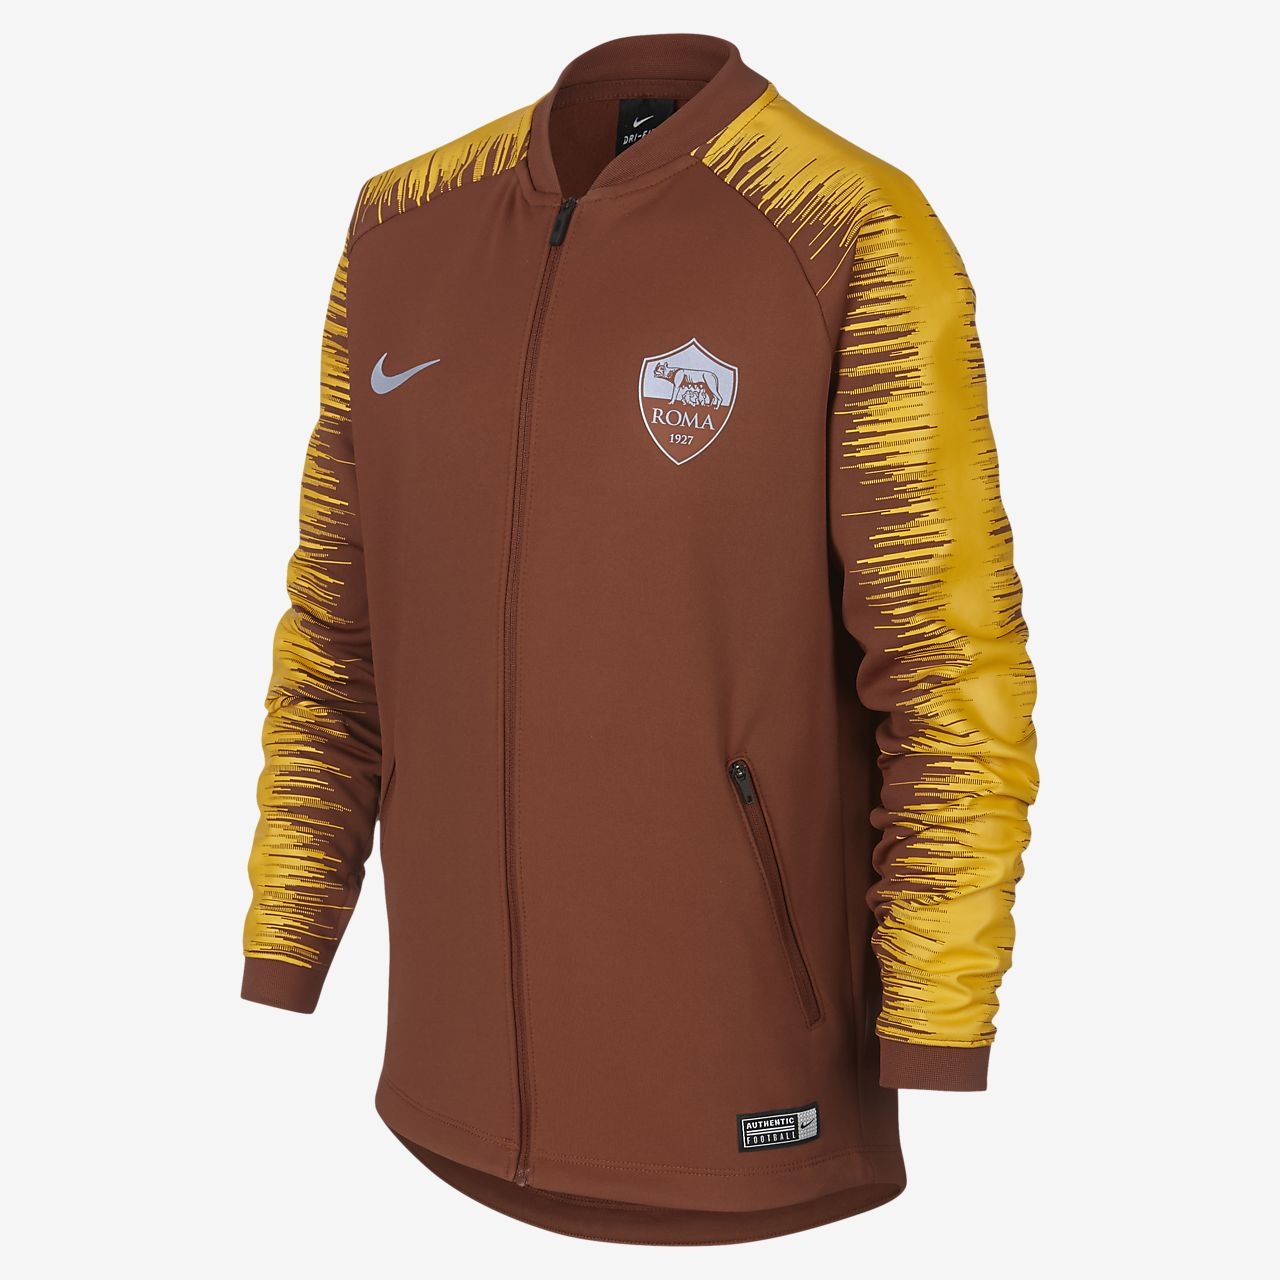 A.S. Roma Anthem Older Kids' Football Jacket